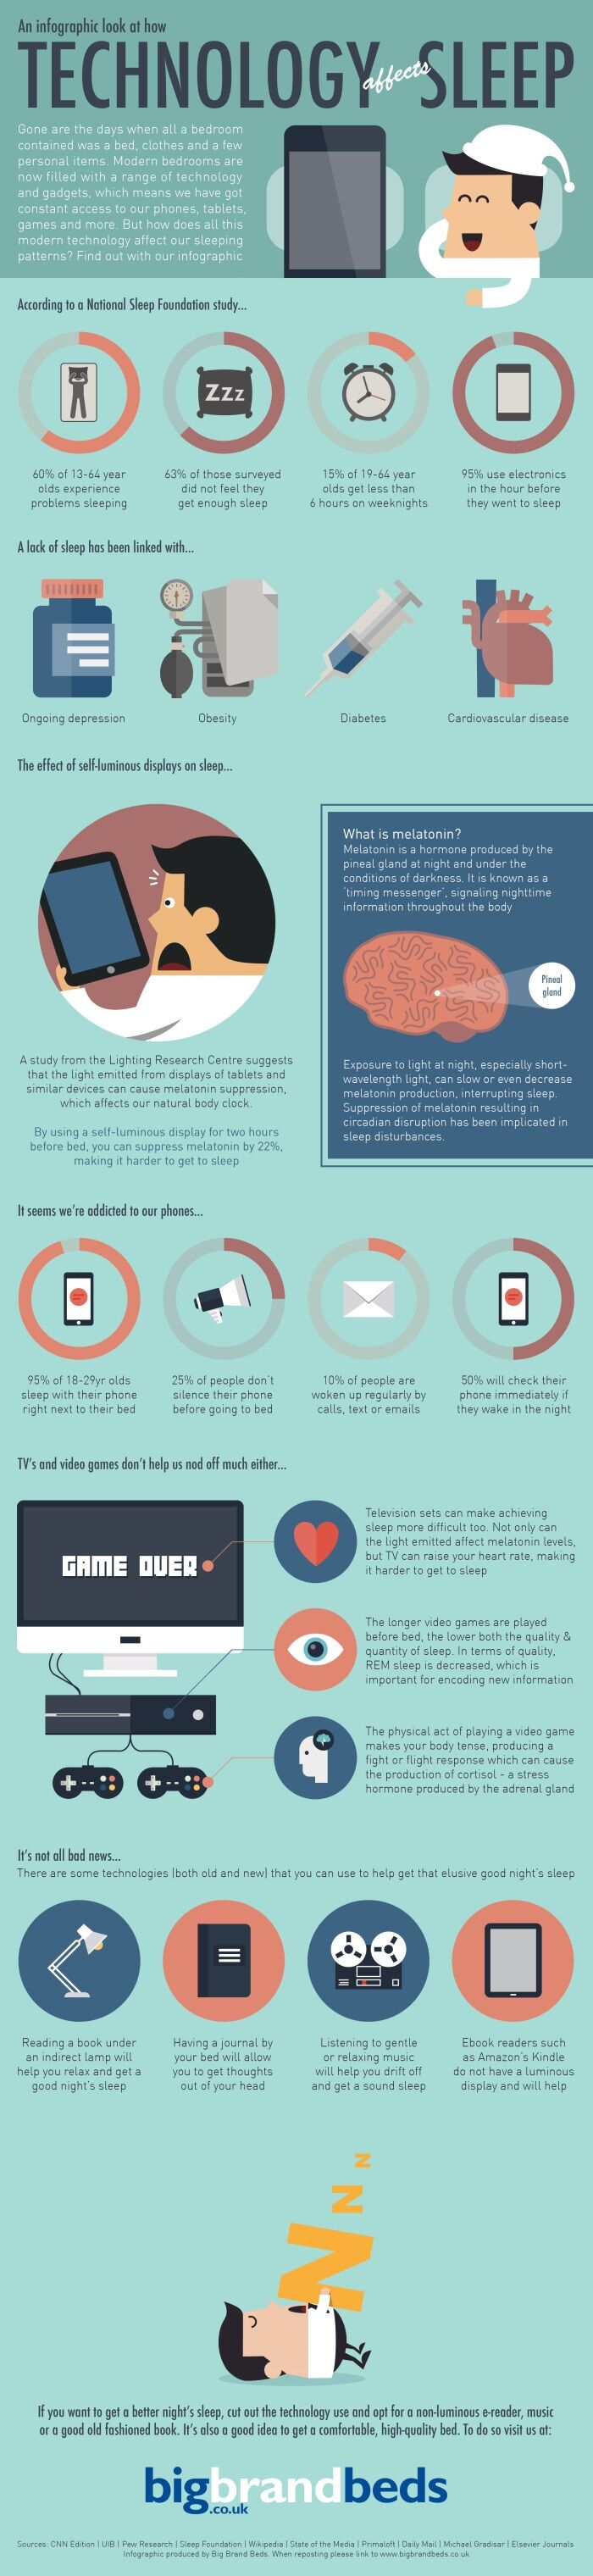 An infographic looking at how technology affects sleep